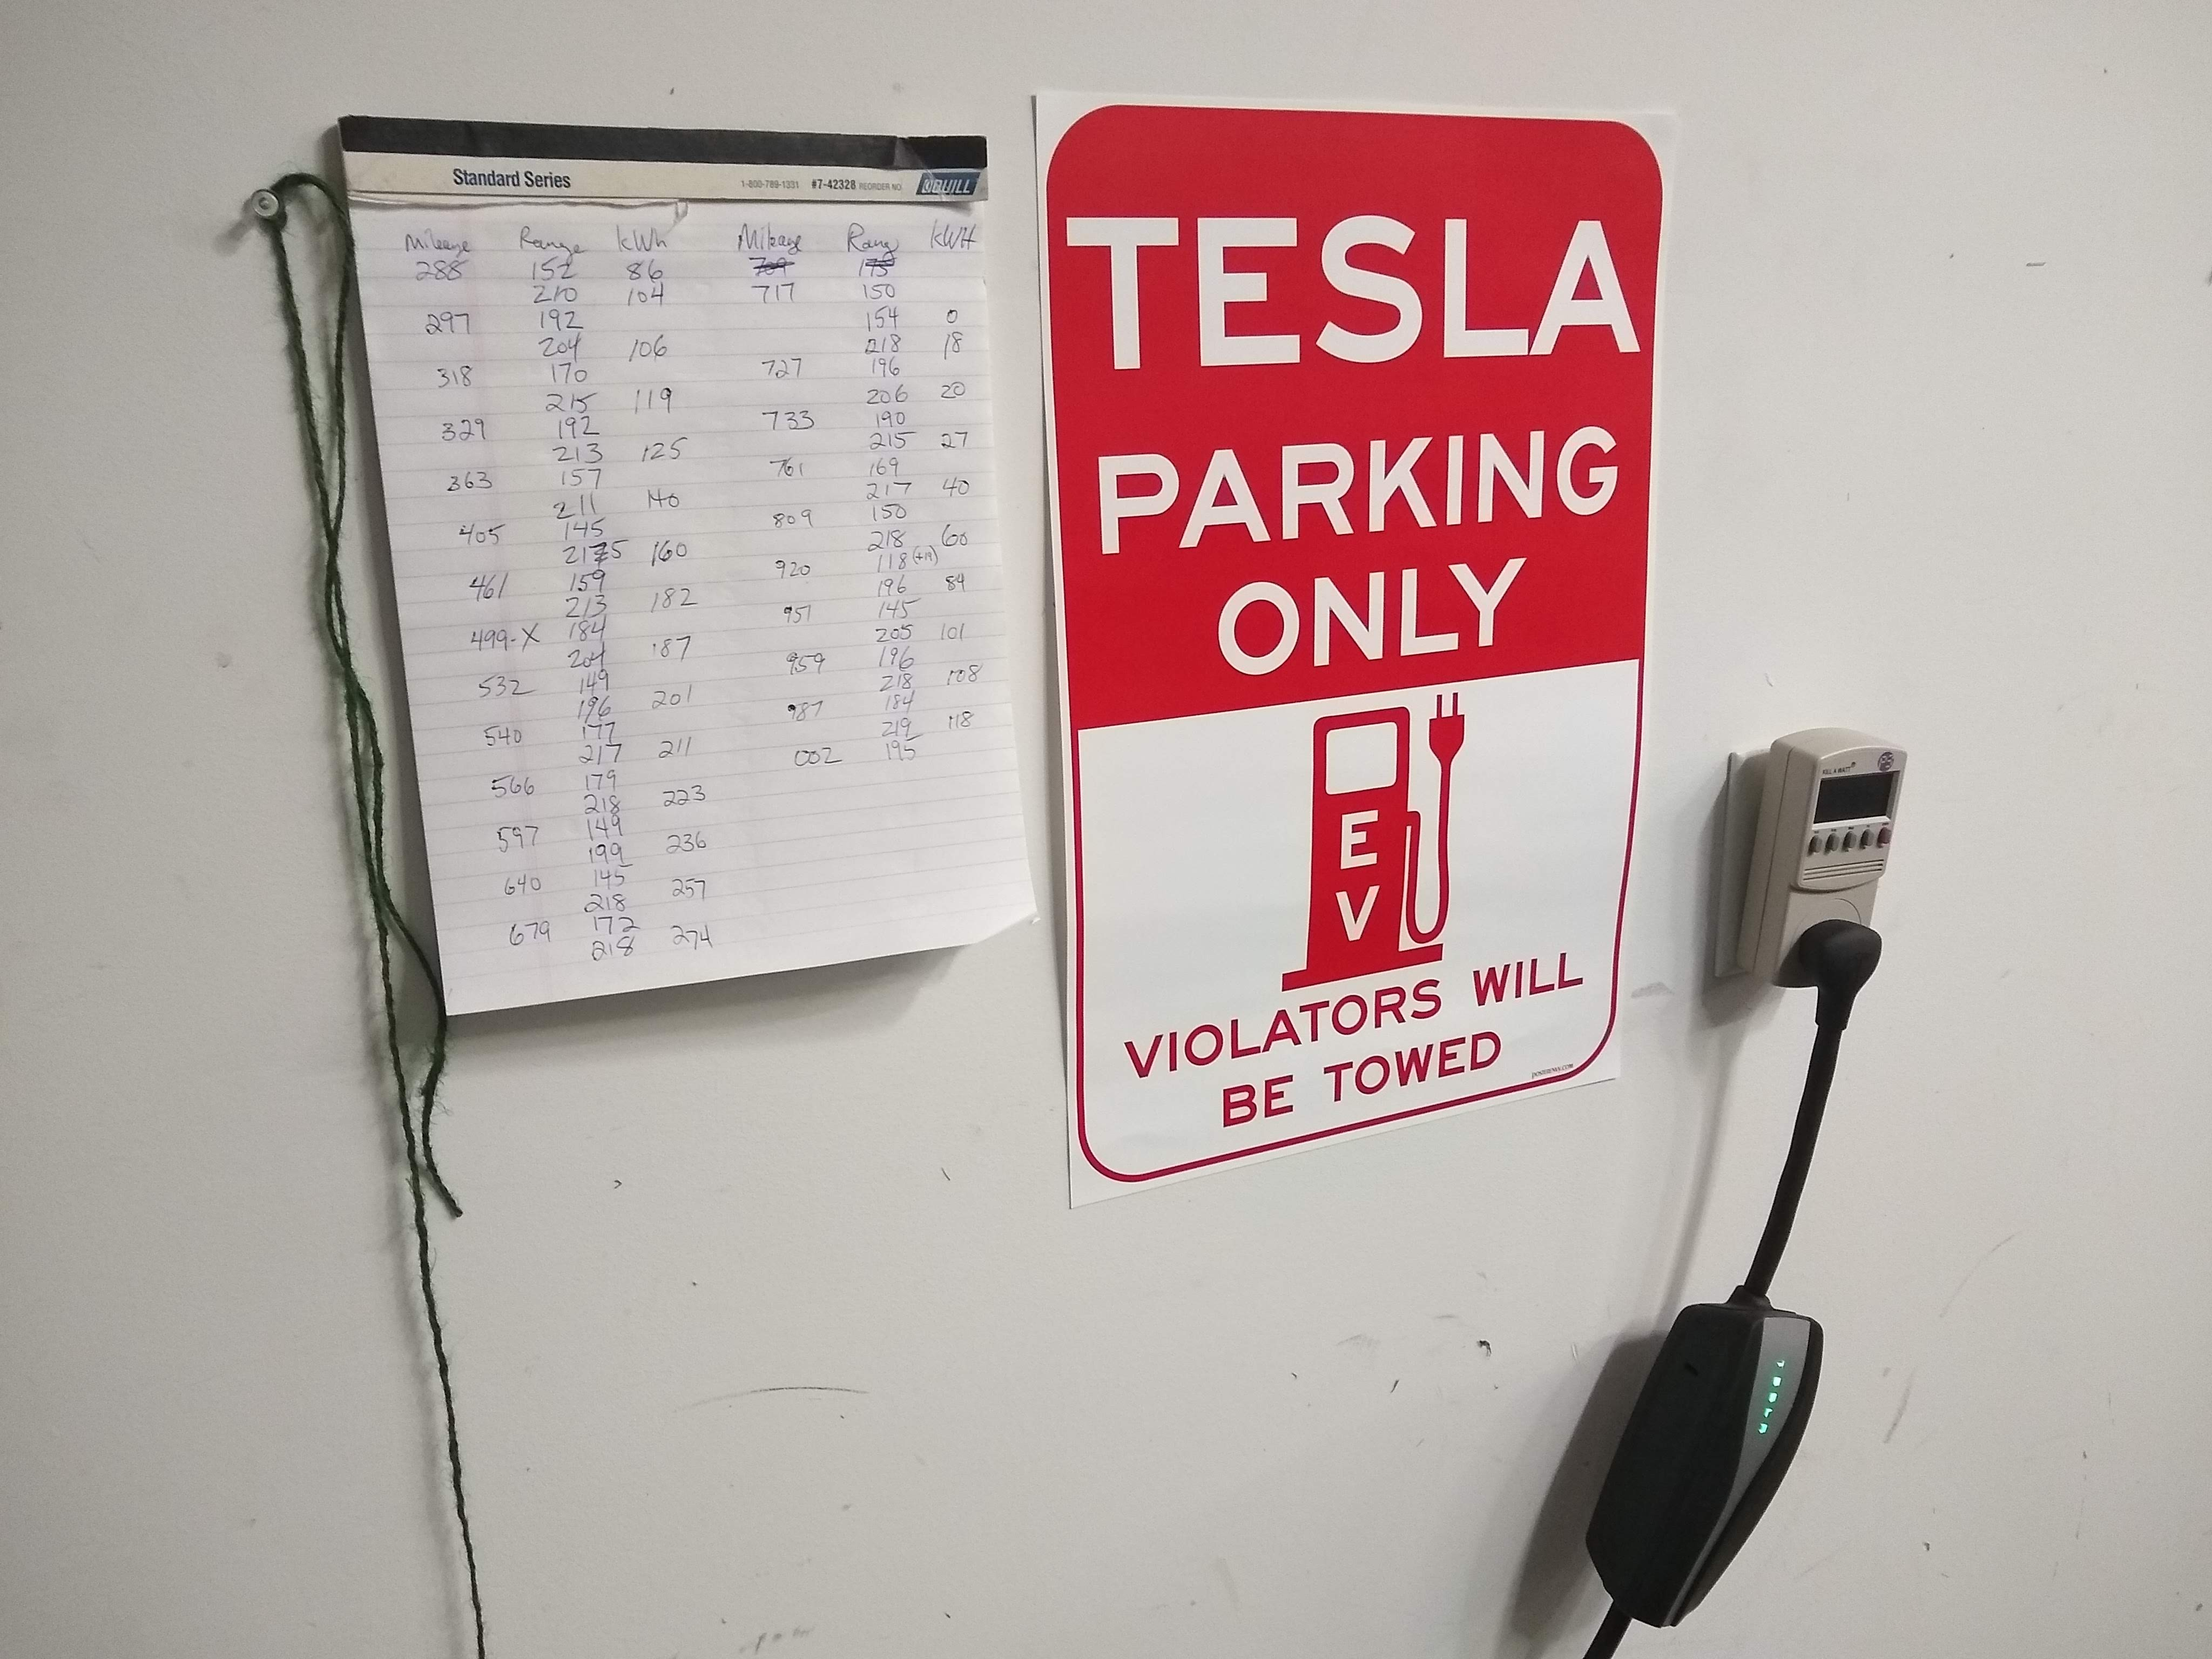 What are some tips for charging a Tesla? - Quora